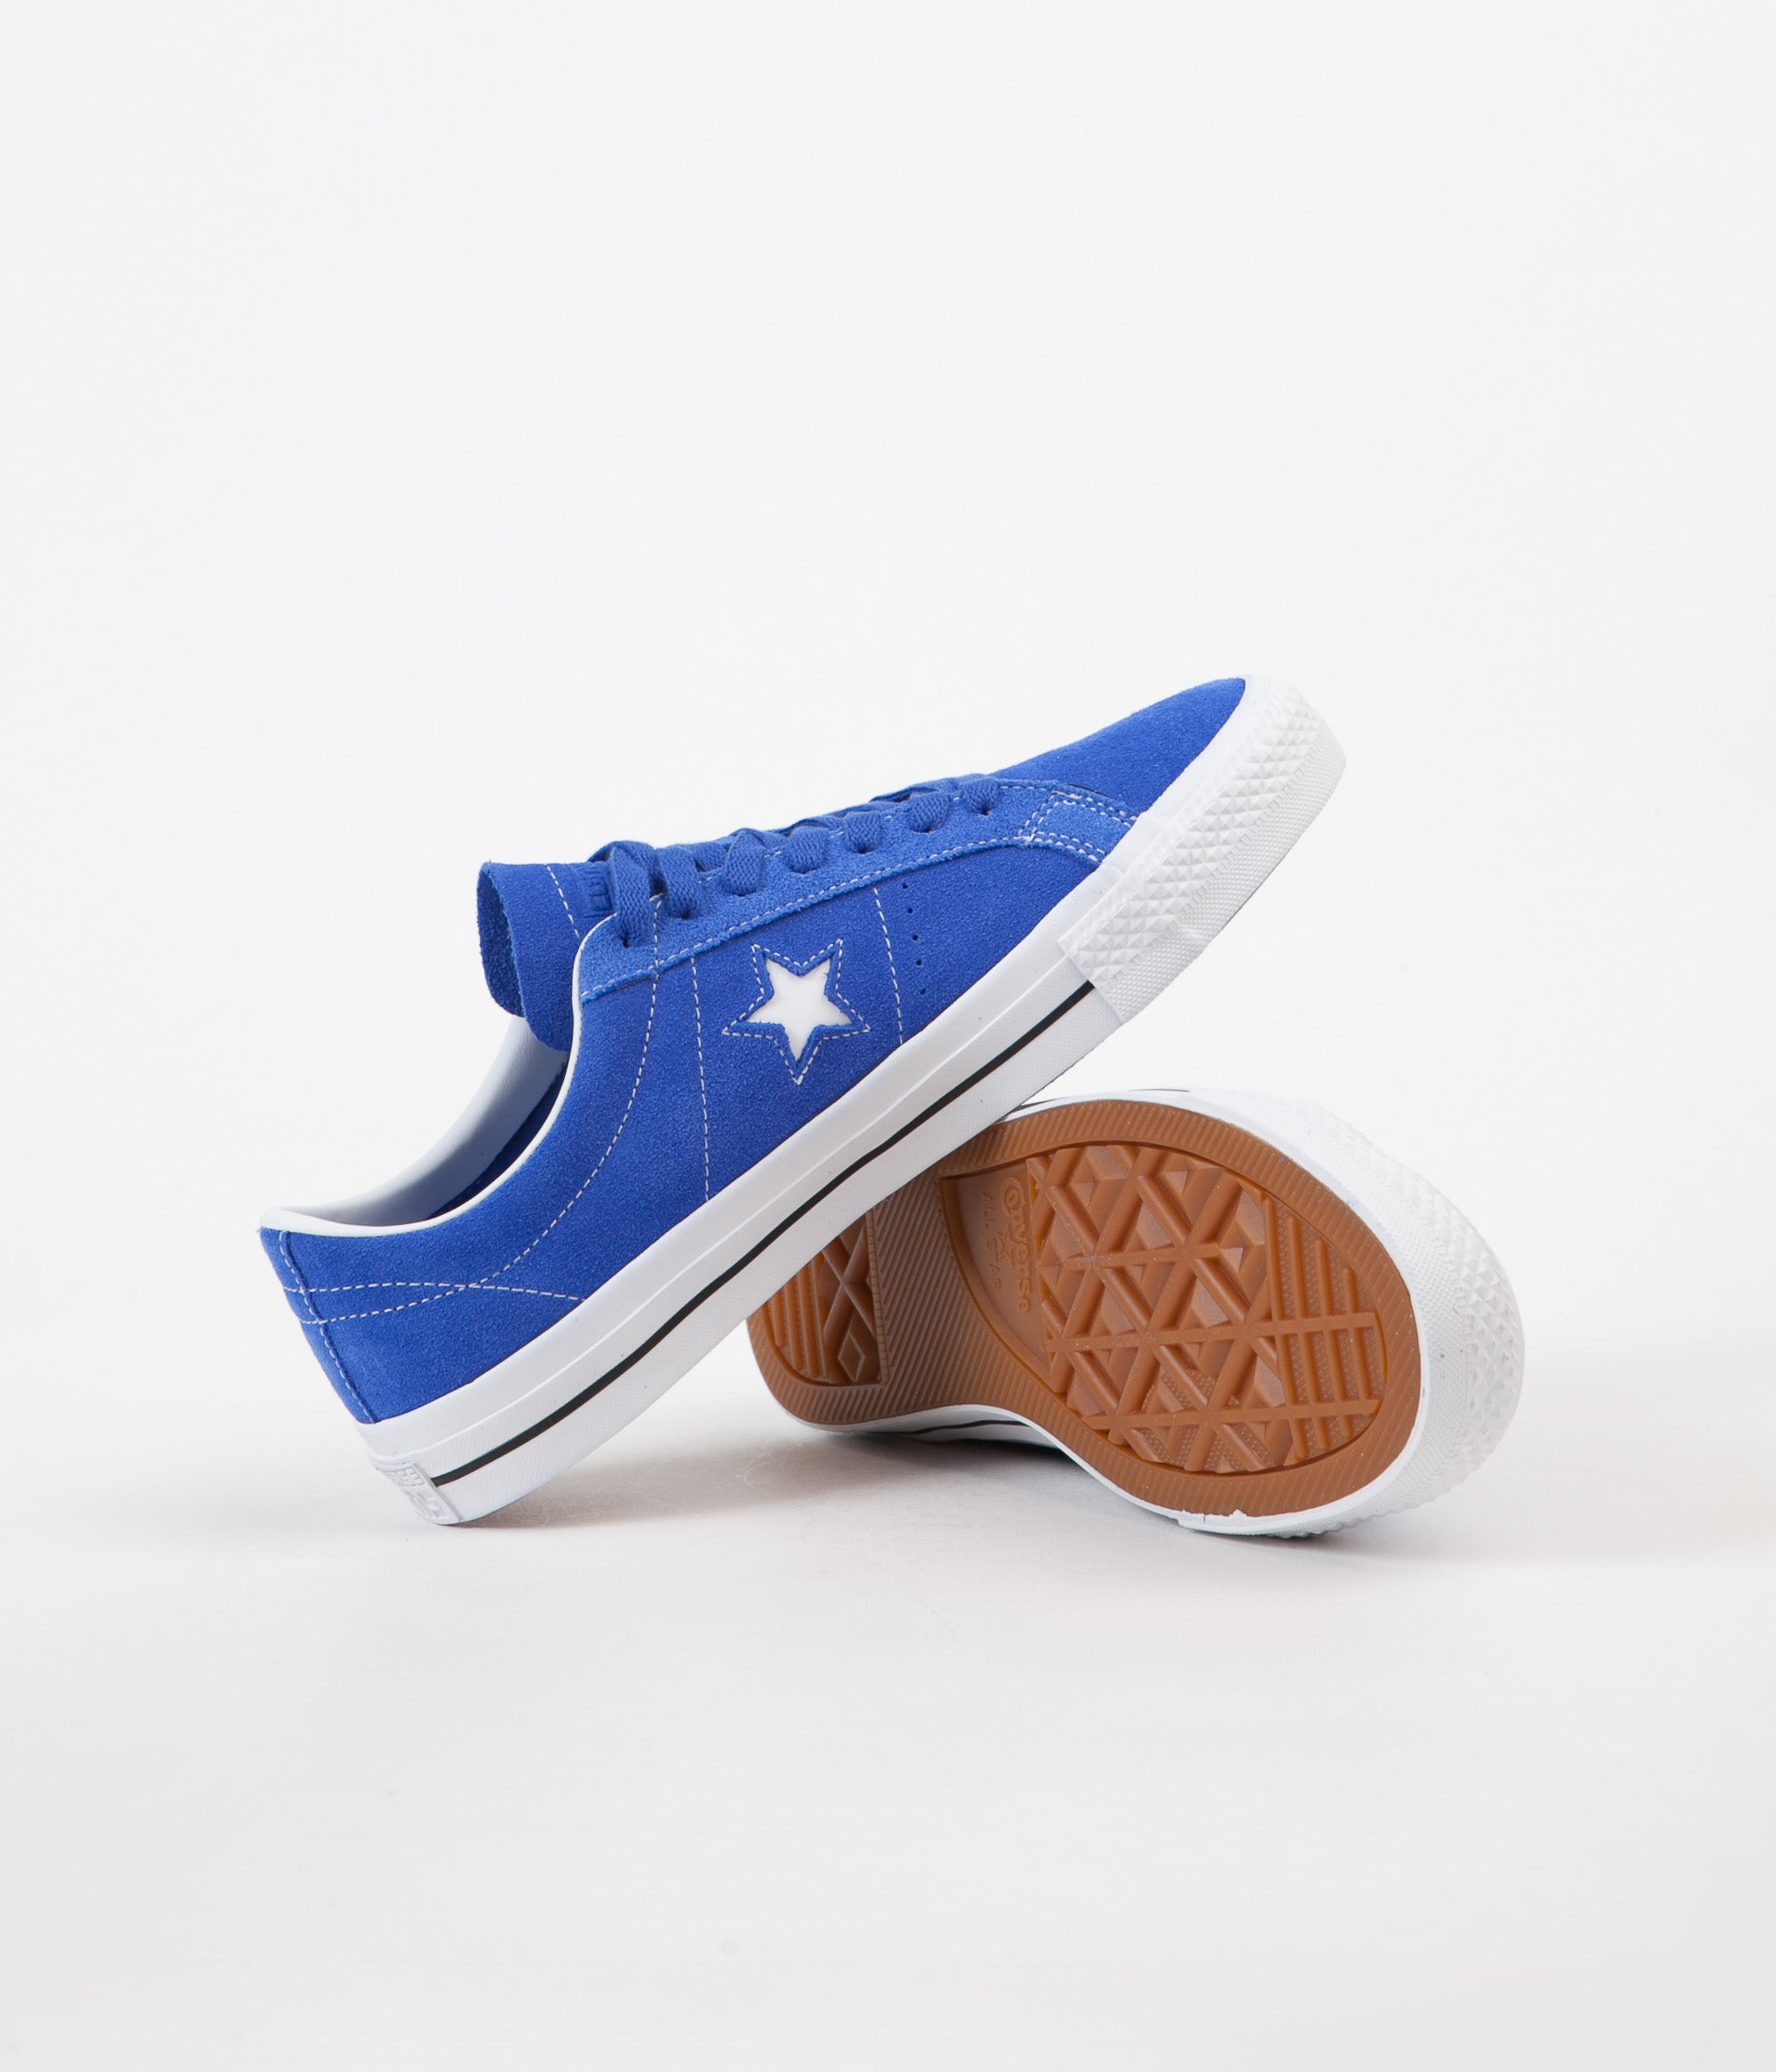 Converse CONS One One One Star Pro Ox Chaussure hyper royal Blanc Noir 4c7208